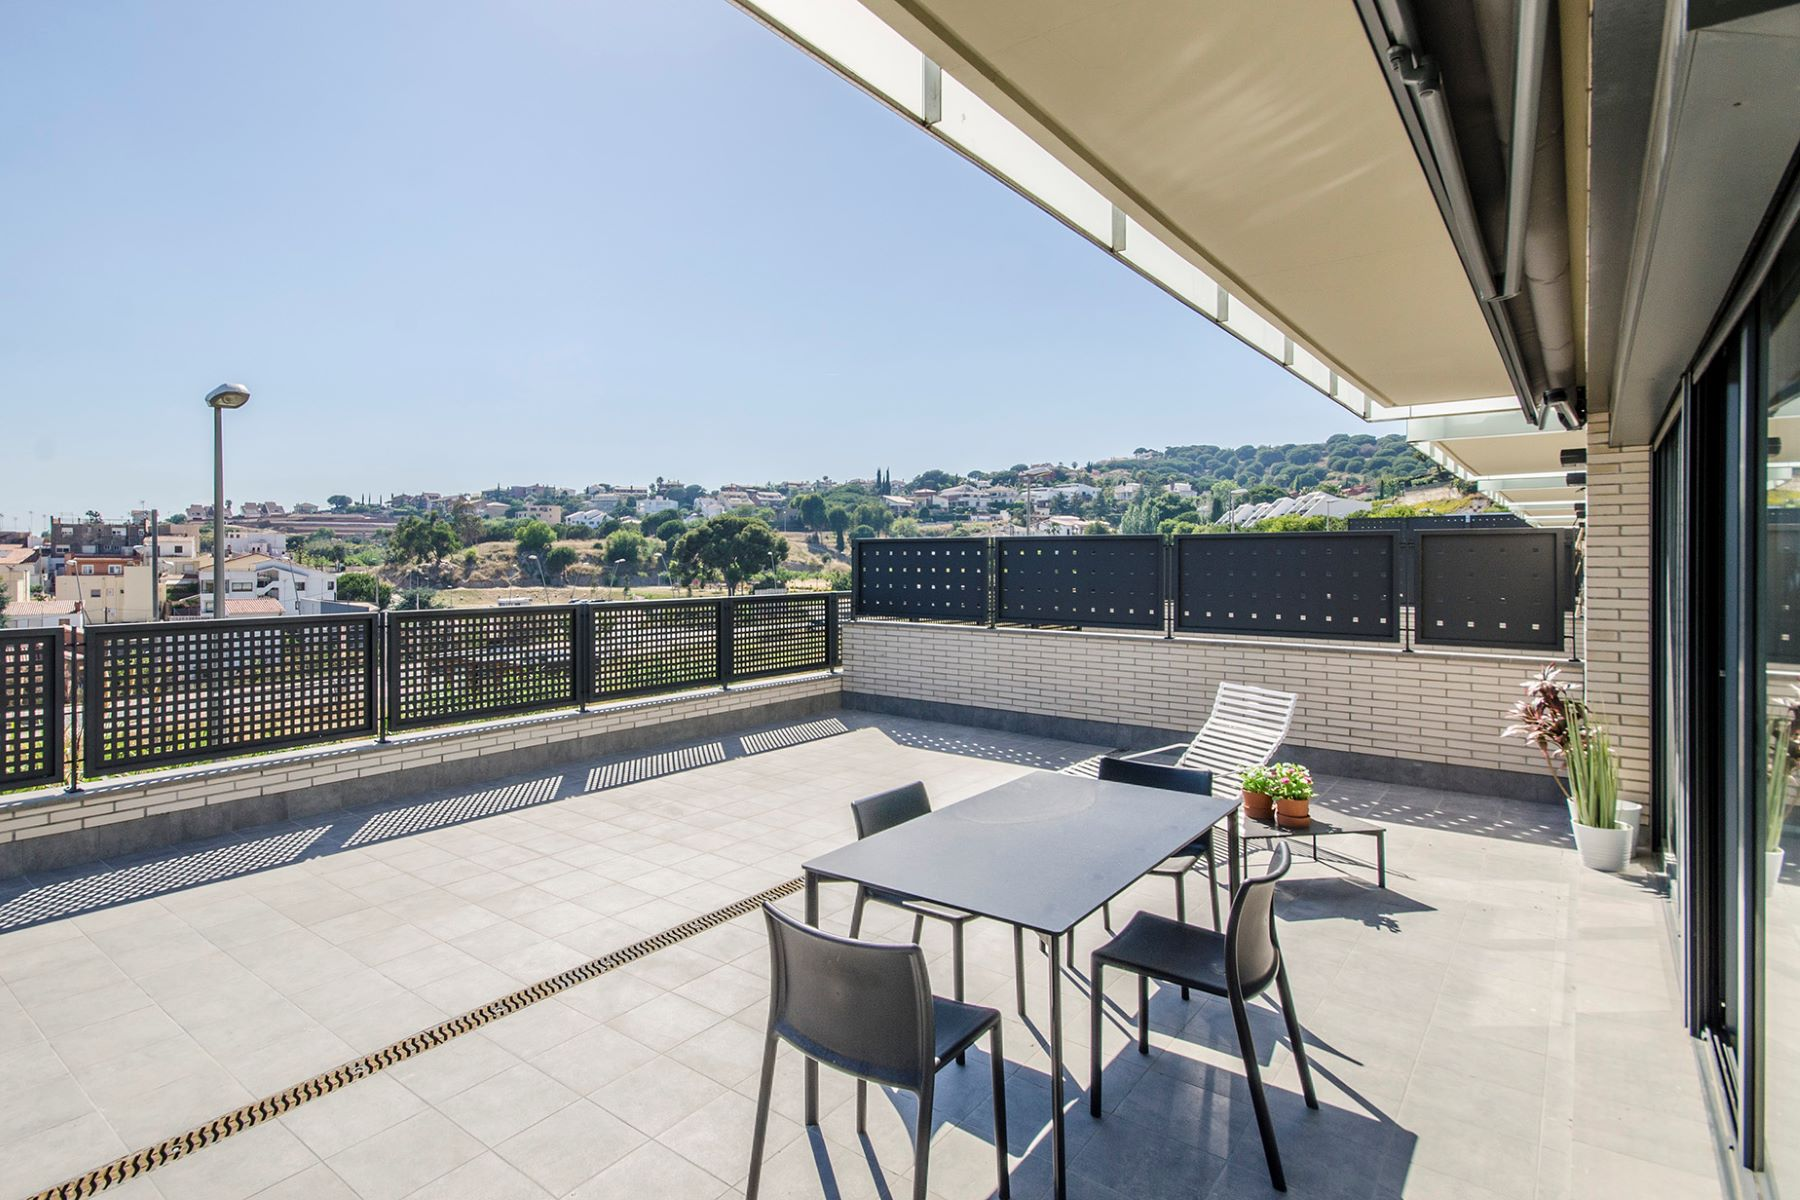 Single Family Home for Sale at New development in Teía Teia, Barcelona, 08329 Spain